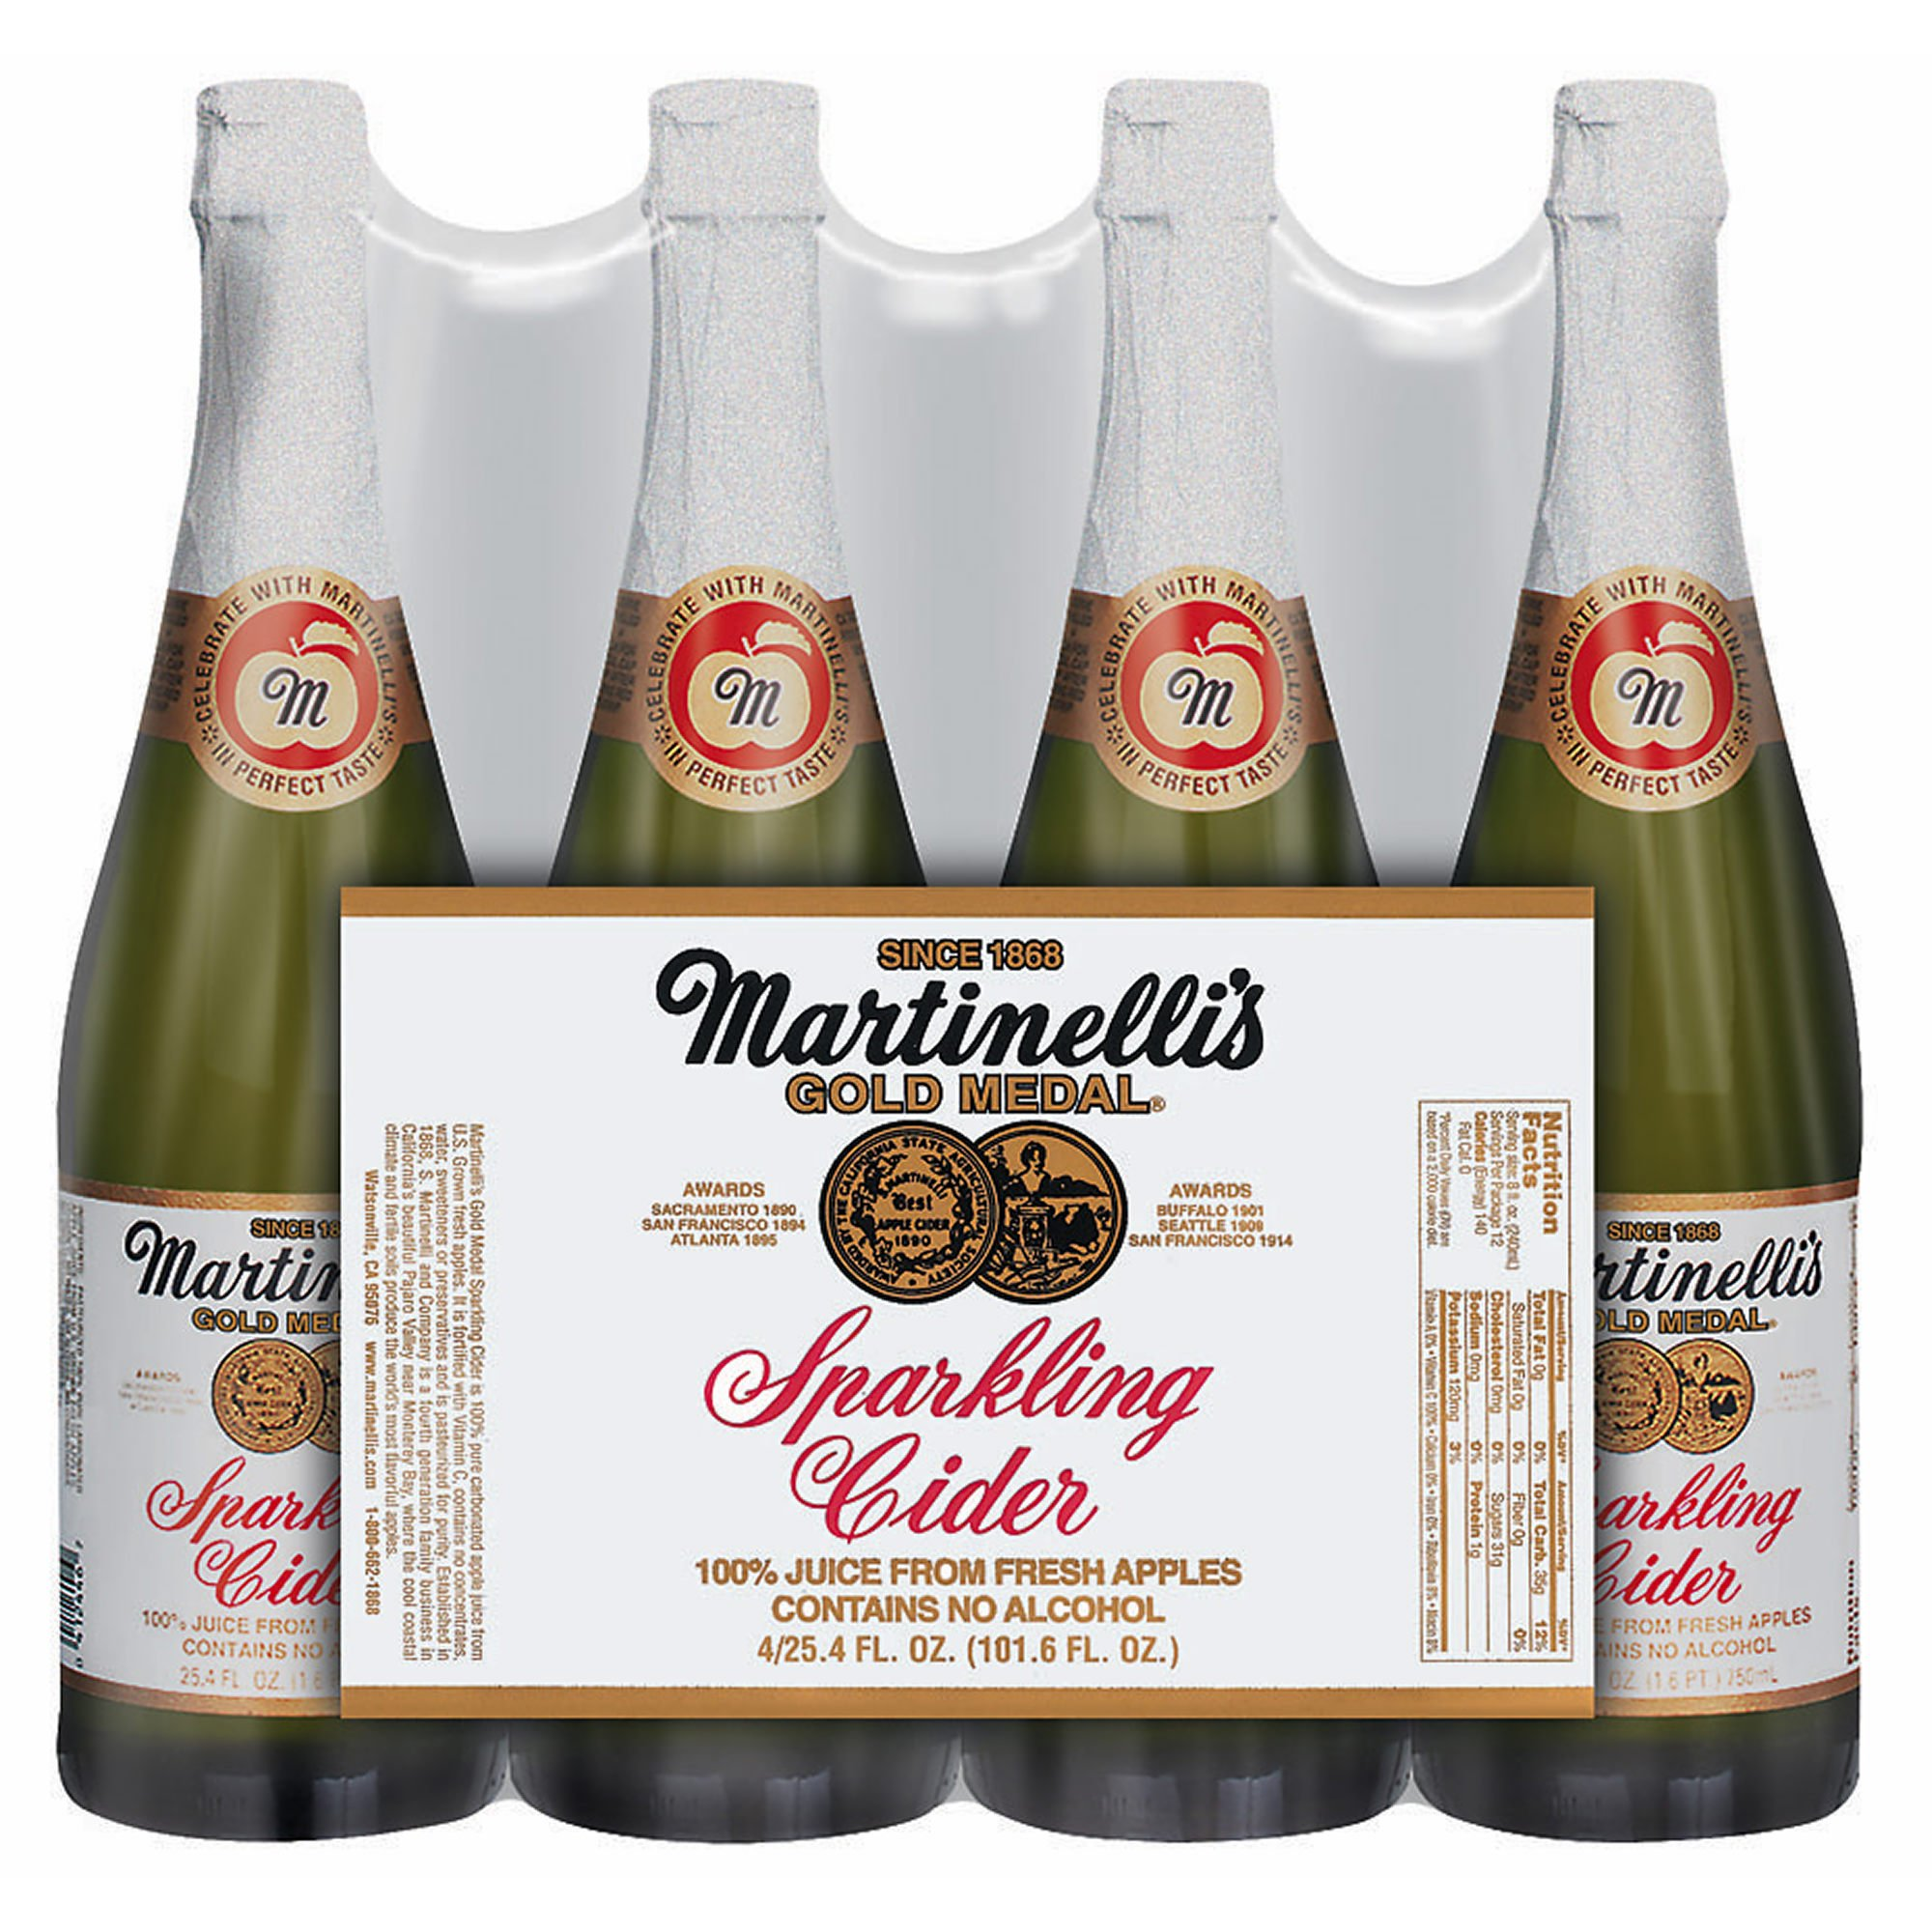 Martinelli Sparkling Apple Cider, 25.4 oz.Bottles, 4 pk. by Martinelli